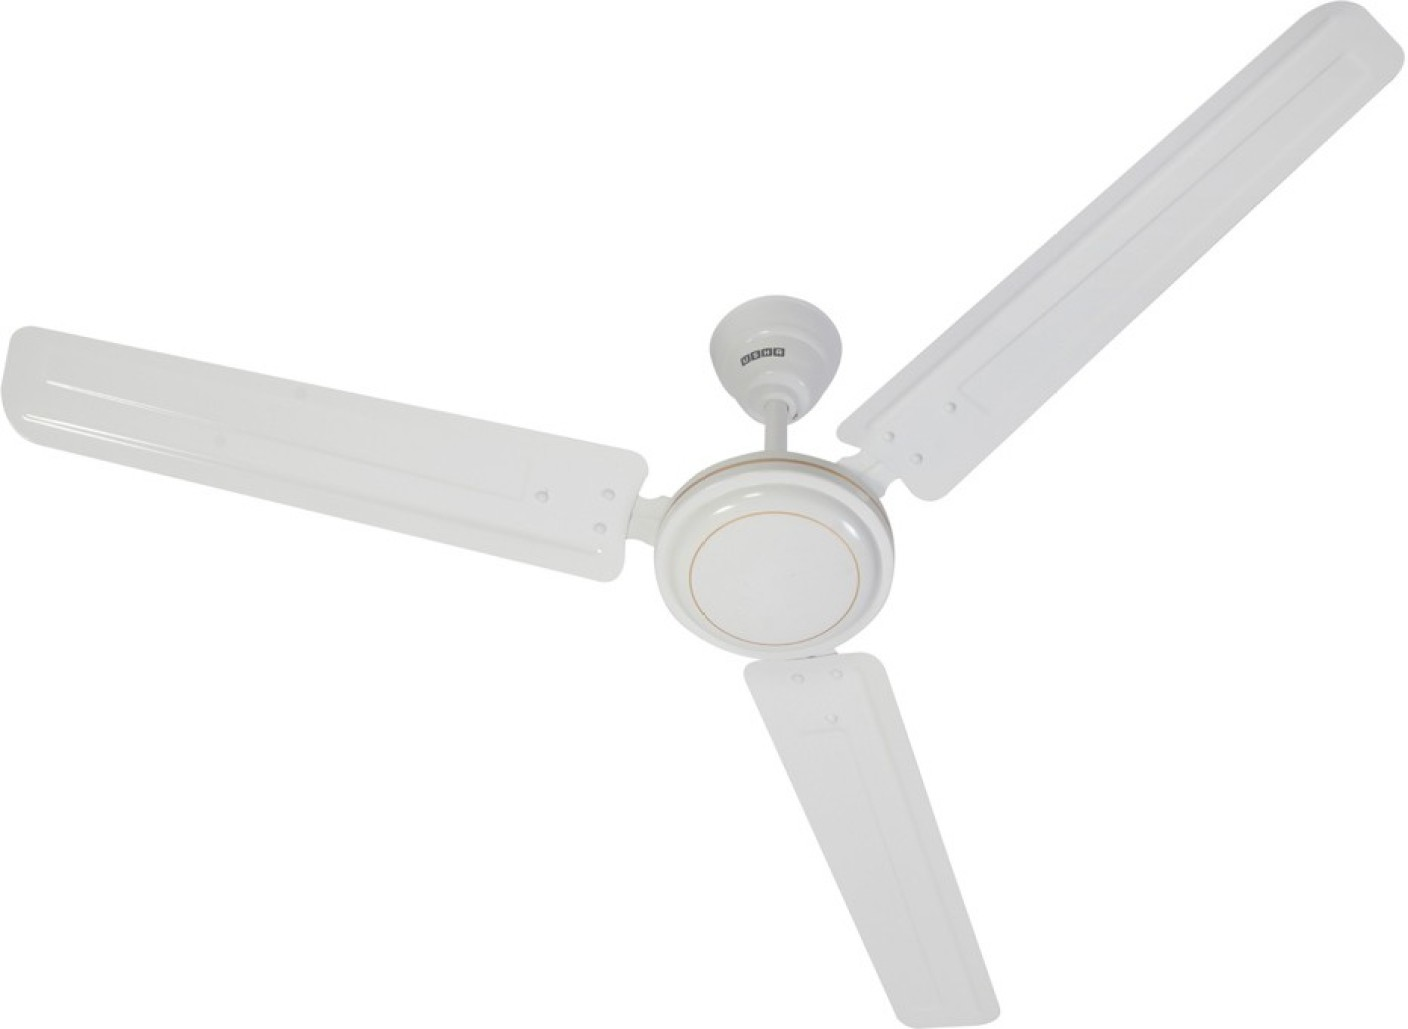 Usha swift 1200mm 3 blade ceiling fan price in india buy usha usha swift 1200mm 3 blade ceiling fan on offer mozeypictures Choice Image